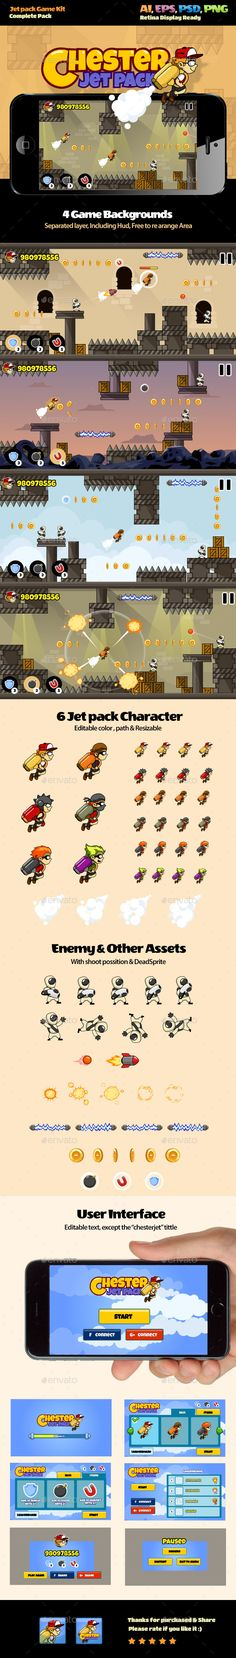 Jet Pack Kit - Game Kits #Game #Assets | Download http://graphicriver.net/item/jet-pack-kit/11993997?ref=sinzo